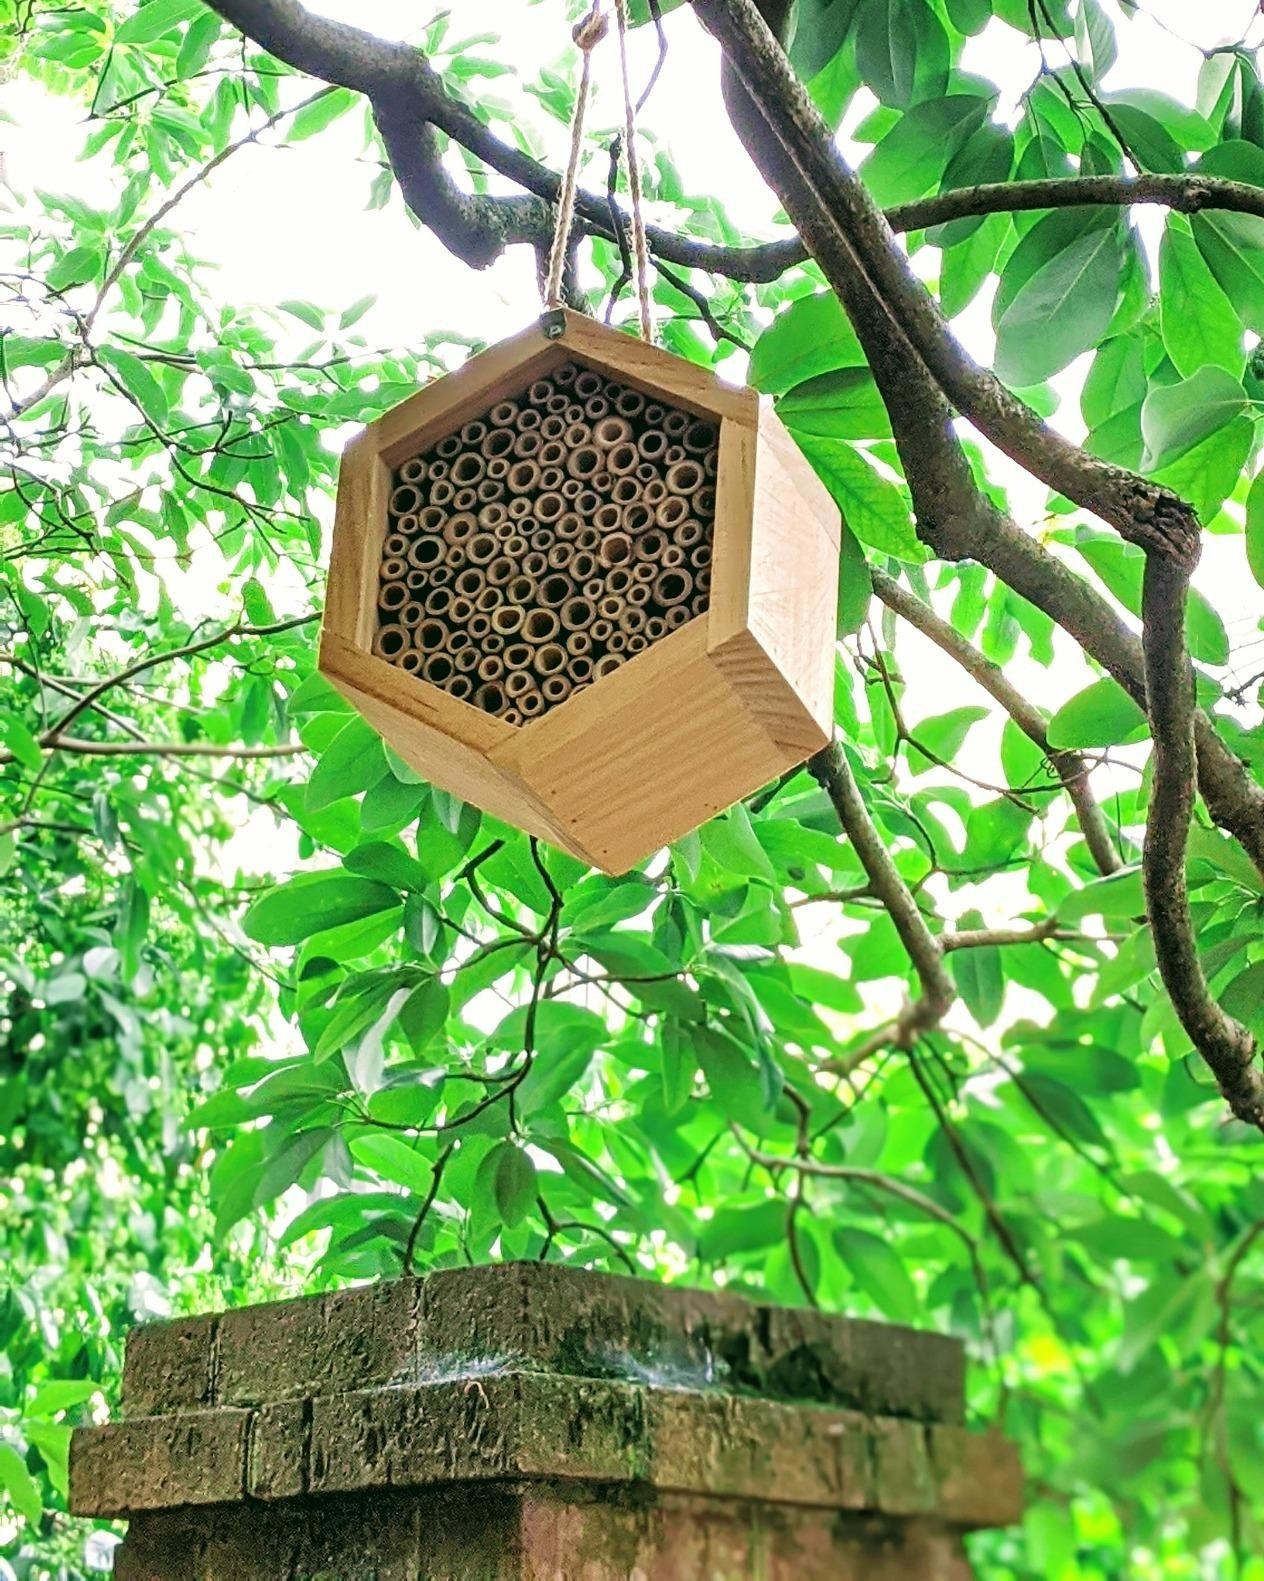 Reviewer photo of the bee house, which is made with pre-rolled tubes that give bees plenty of small places to nest